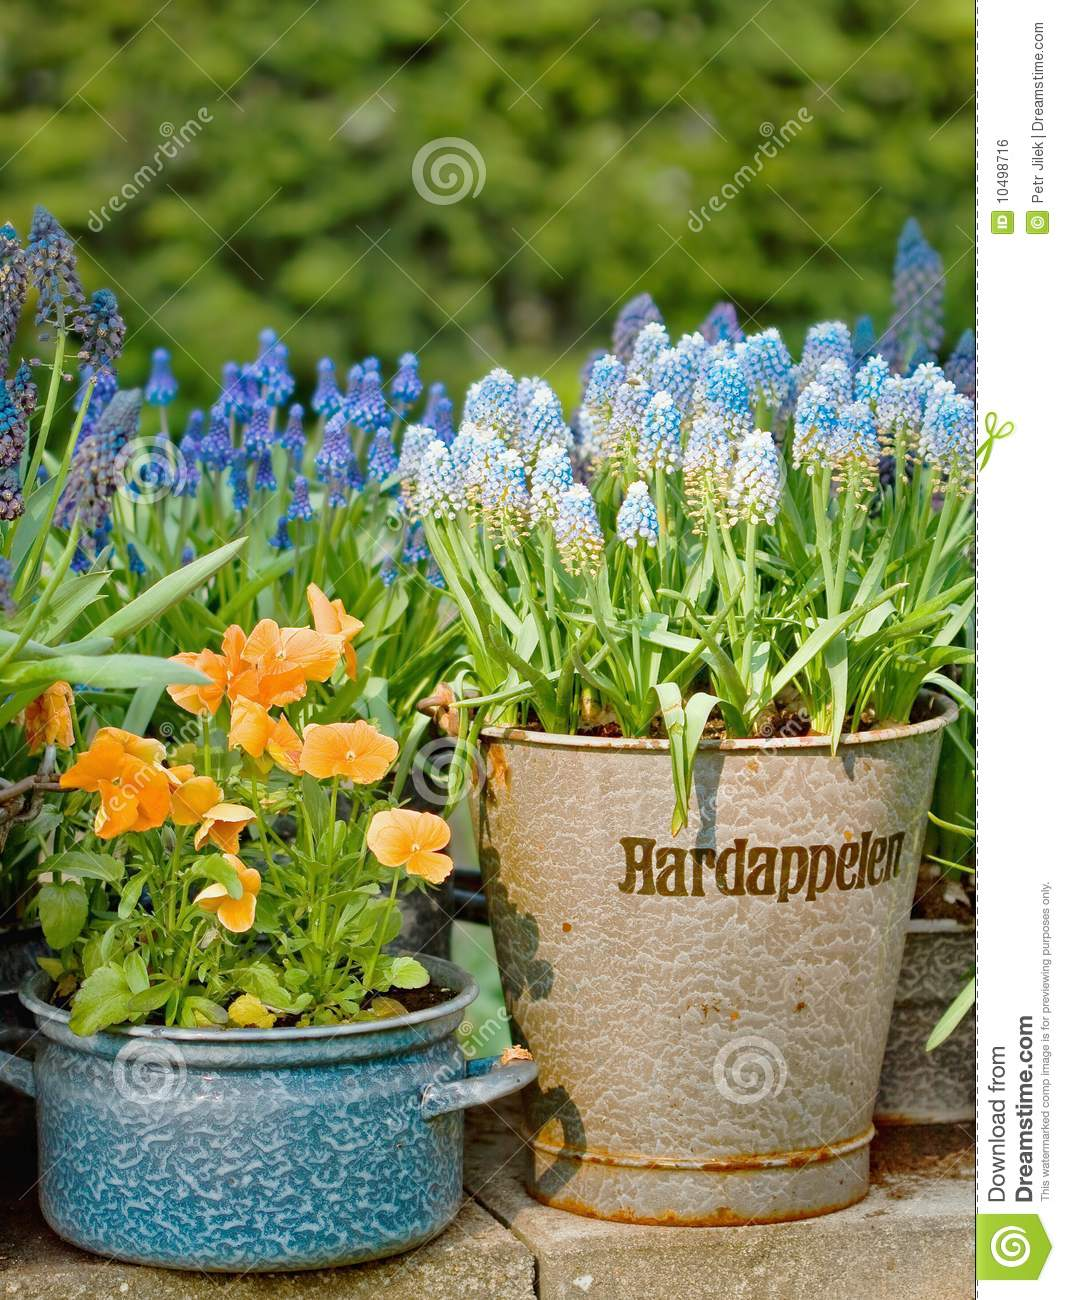 Pictures of Beautiful Flower Pots http://www.dreamstime.com/royalty-free-stock-image-beautiful-flowers-sheet-covering-pots-image10498716